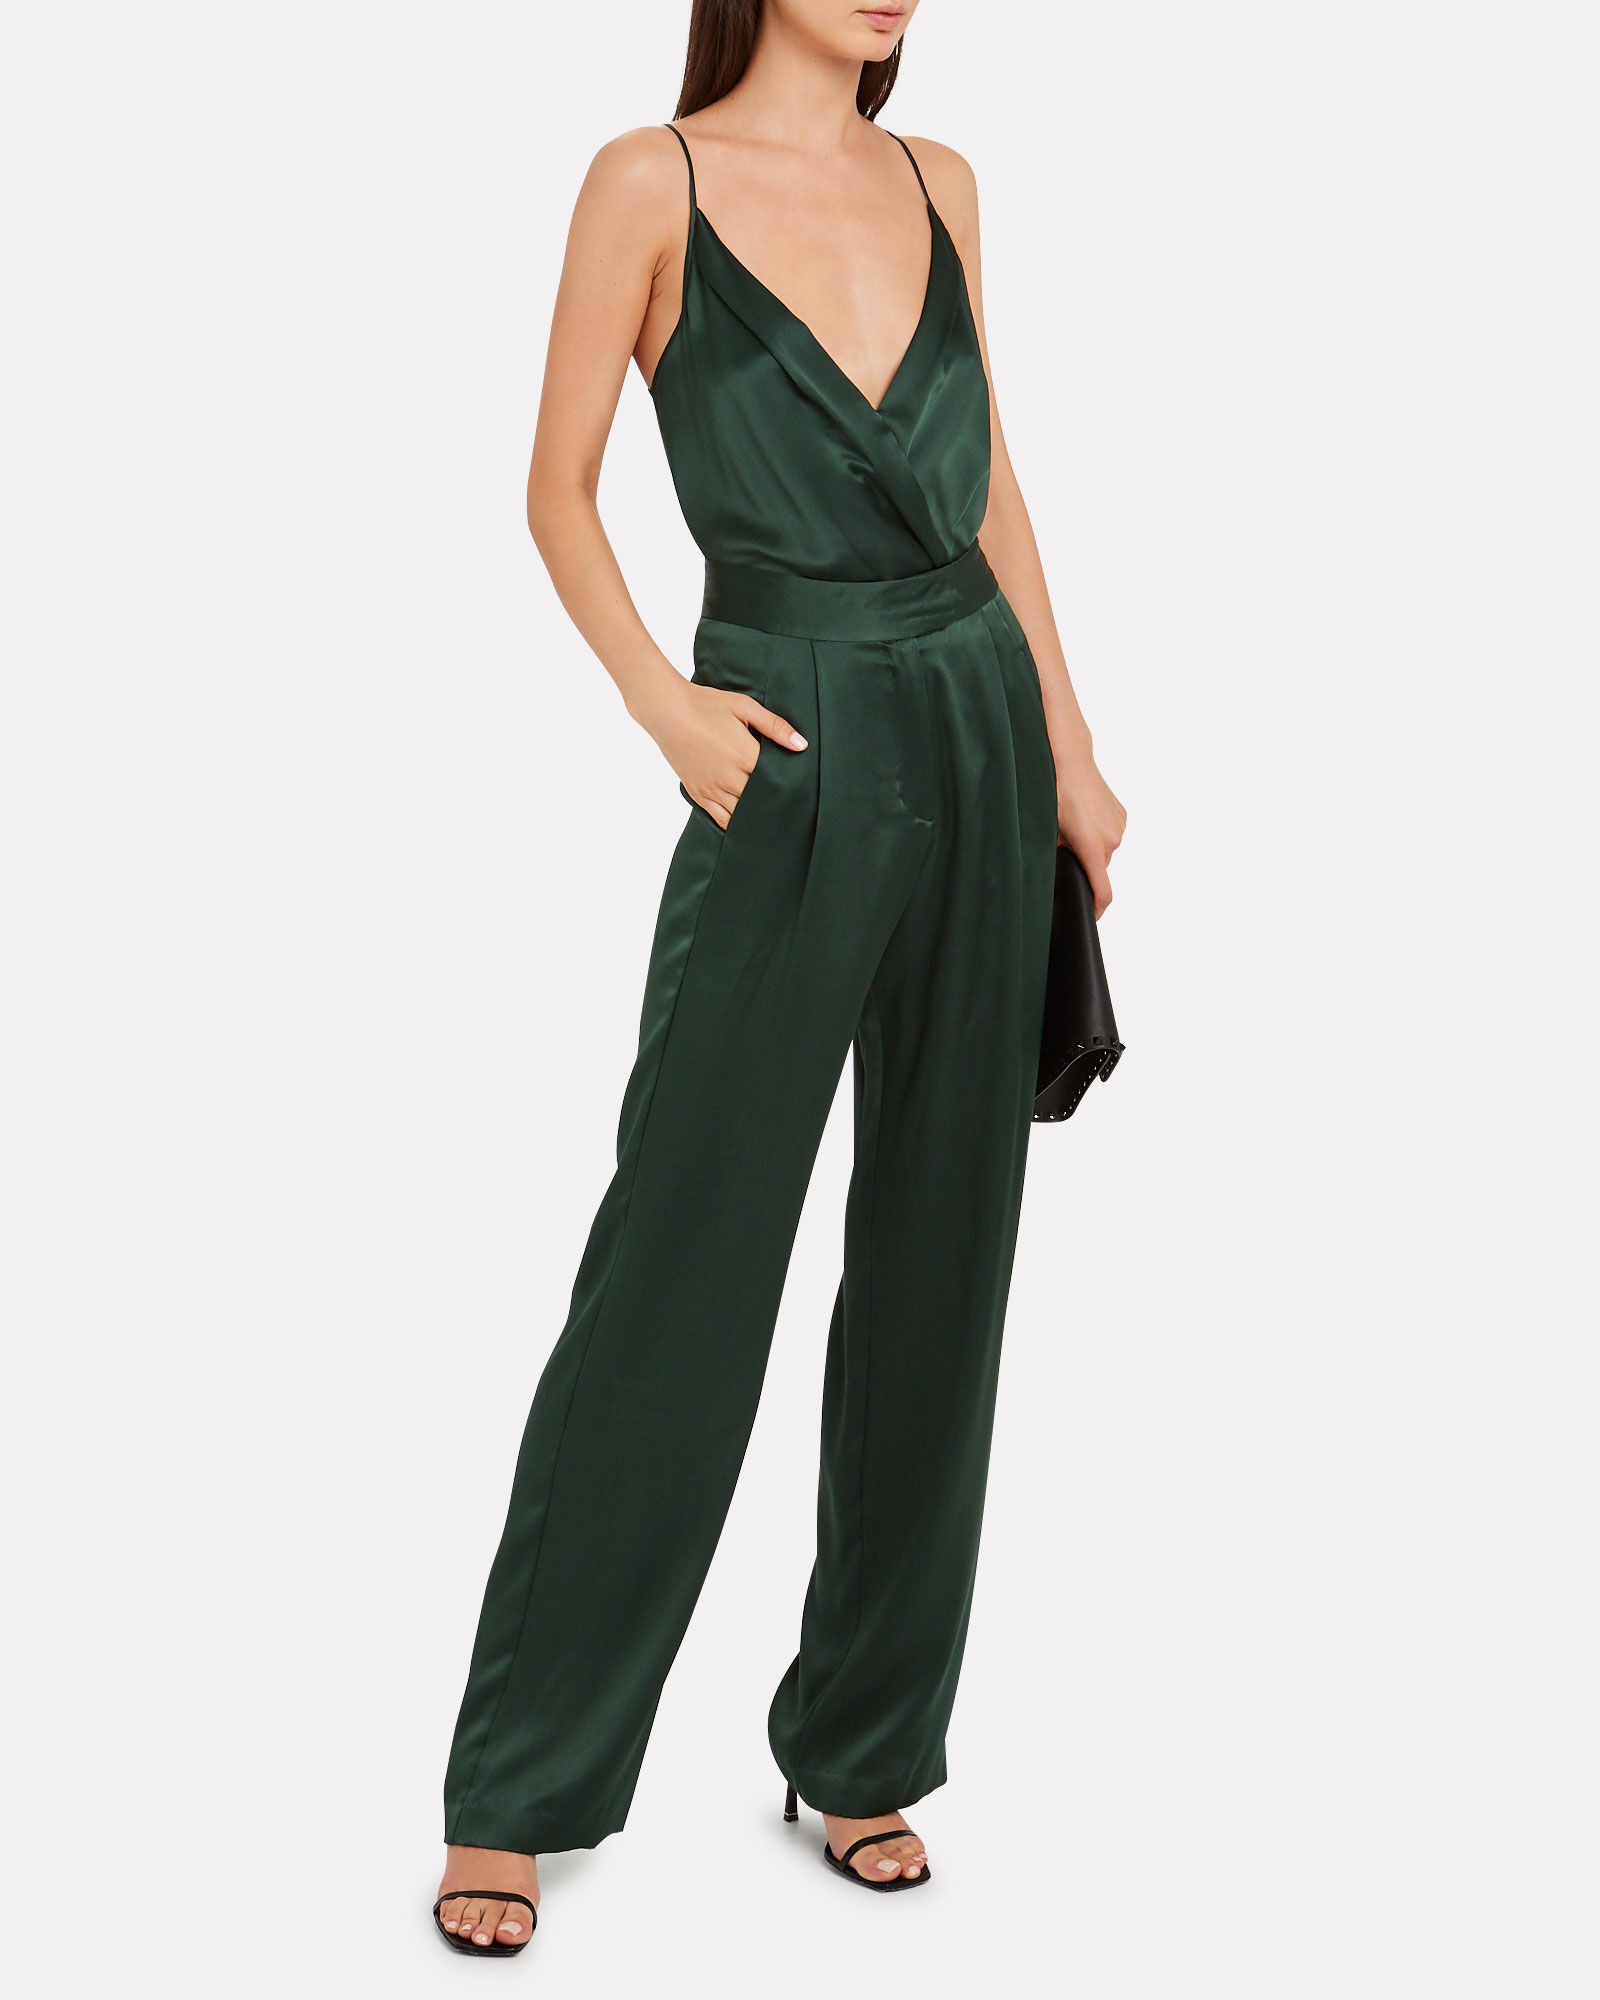 Silk Charmeuse Wrap Bodysuit, FOREST GREEN, hi-res